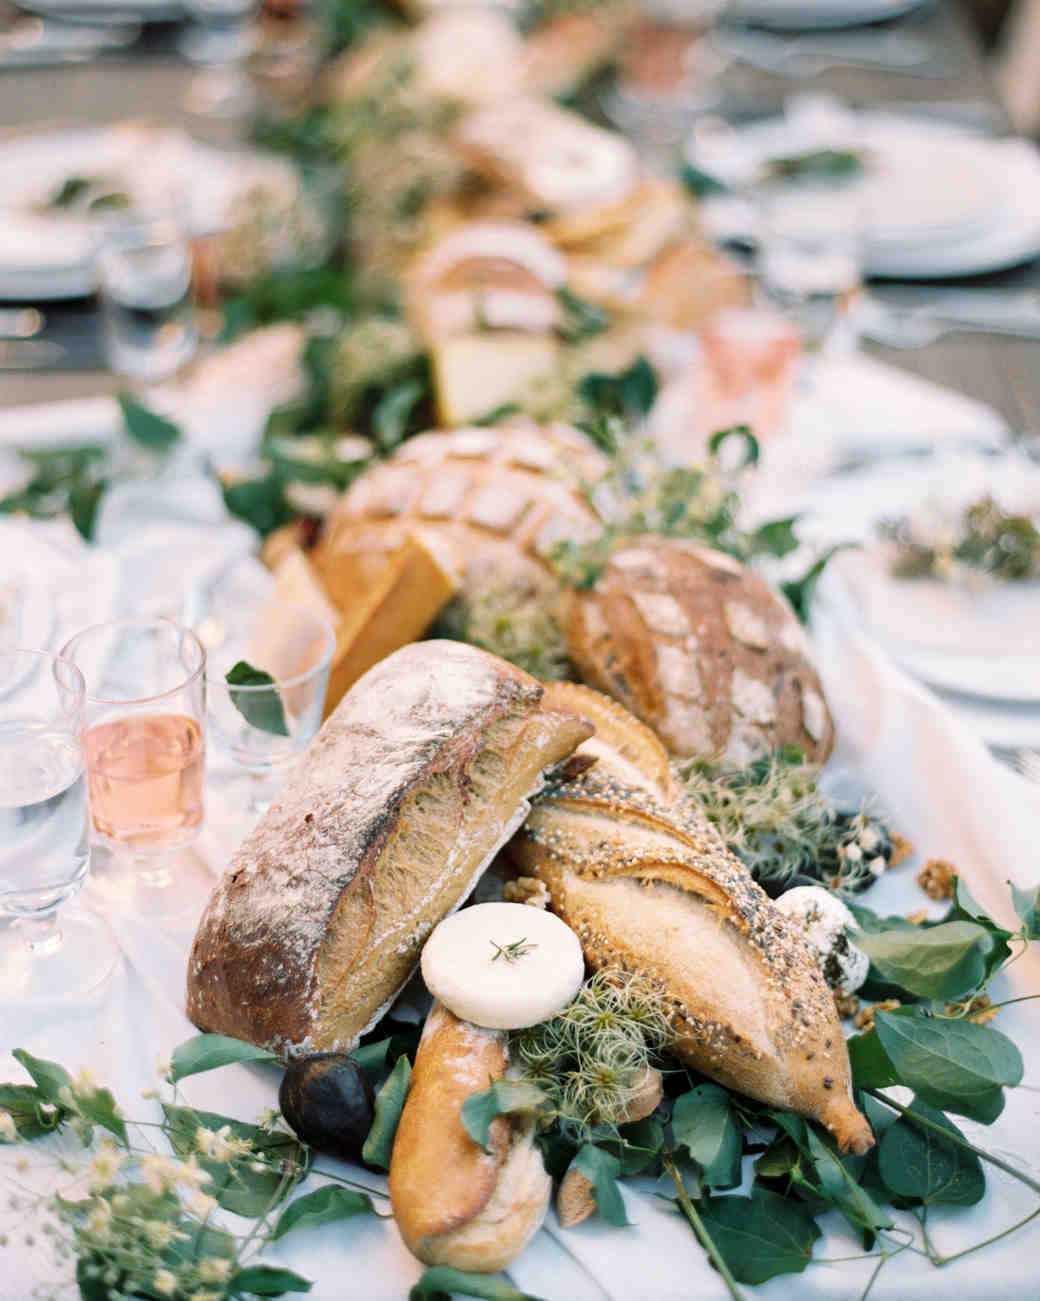 bread loaves as table centerpiece